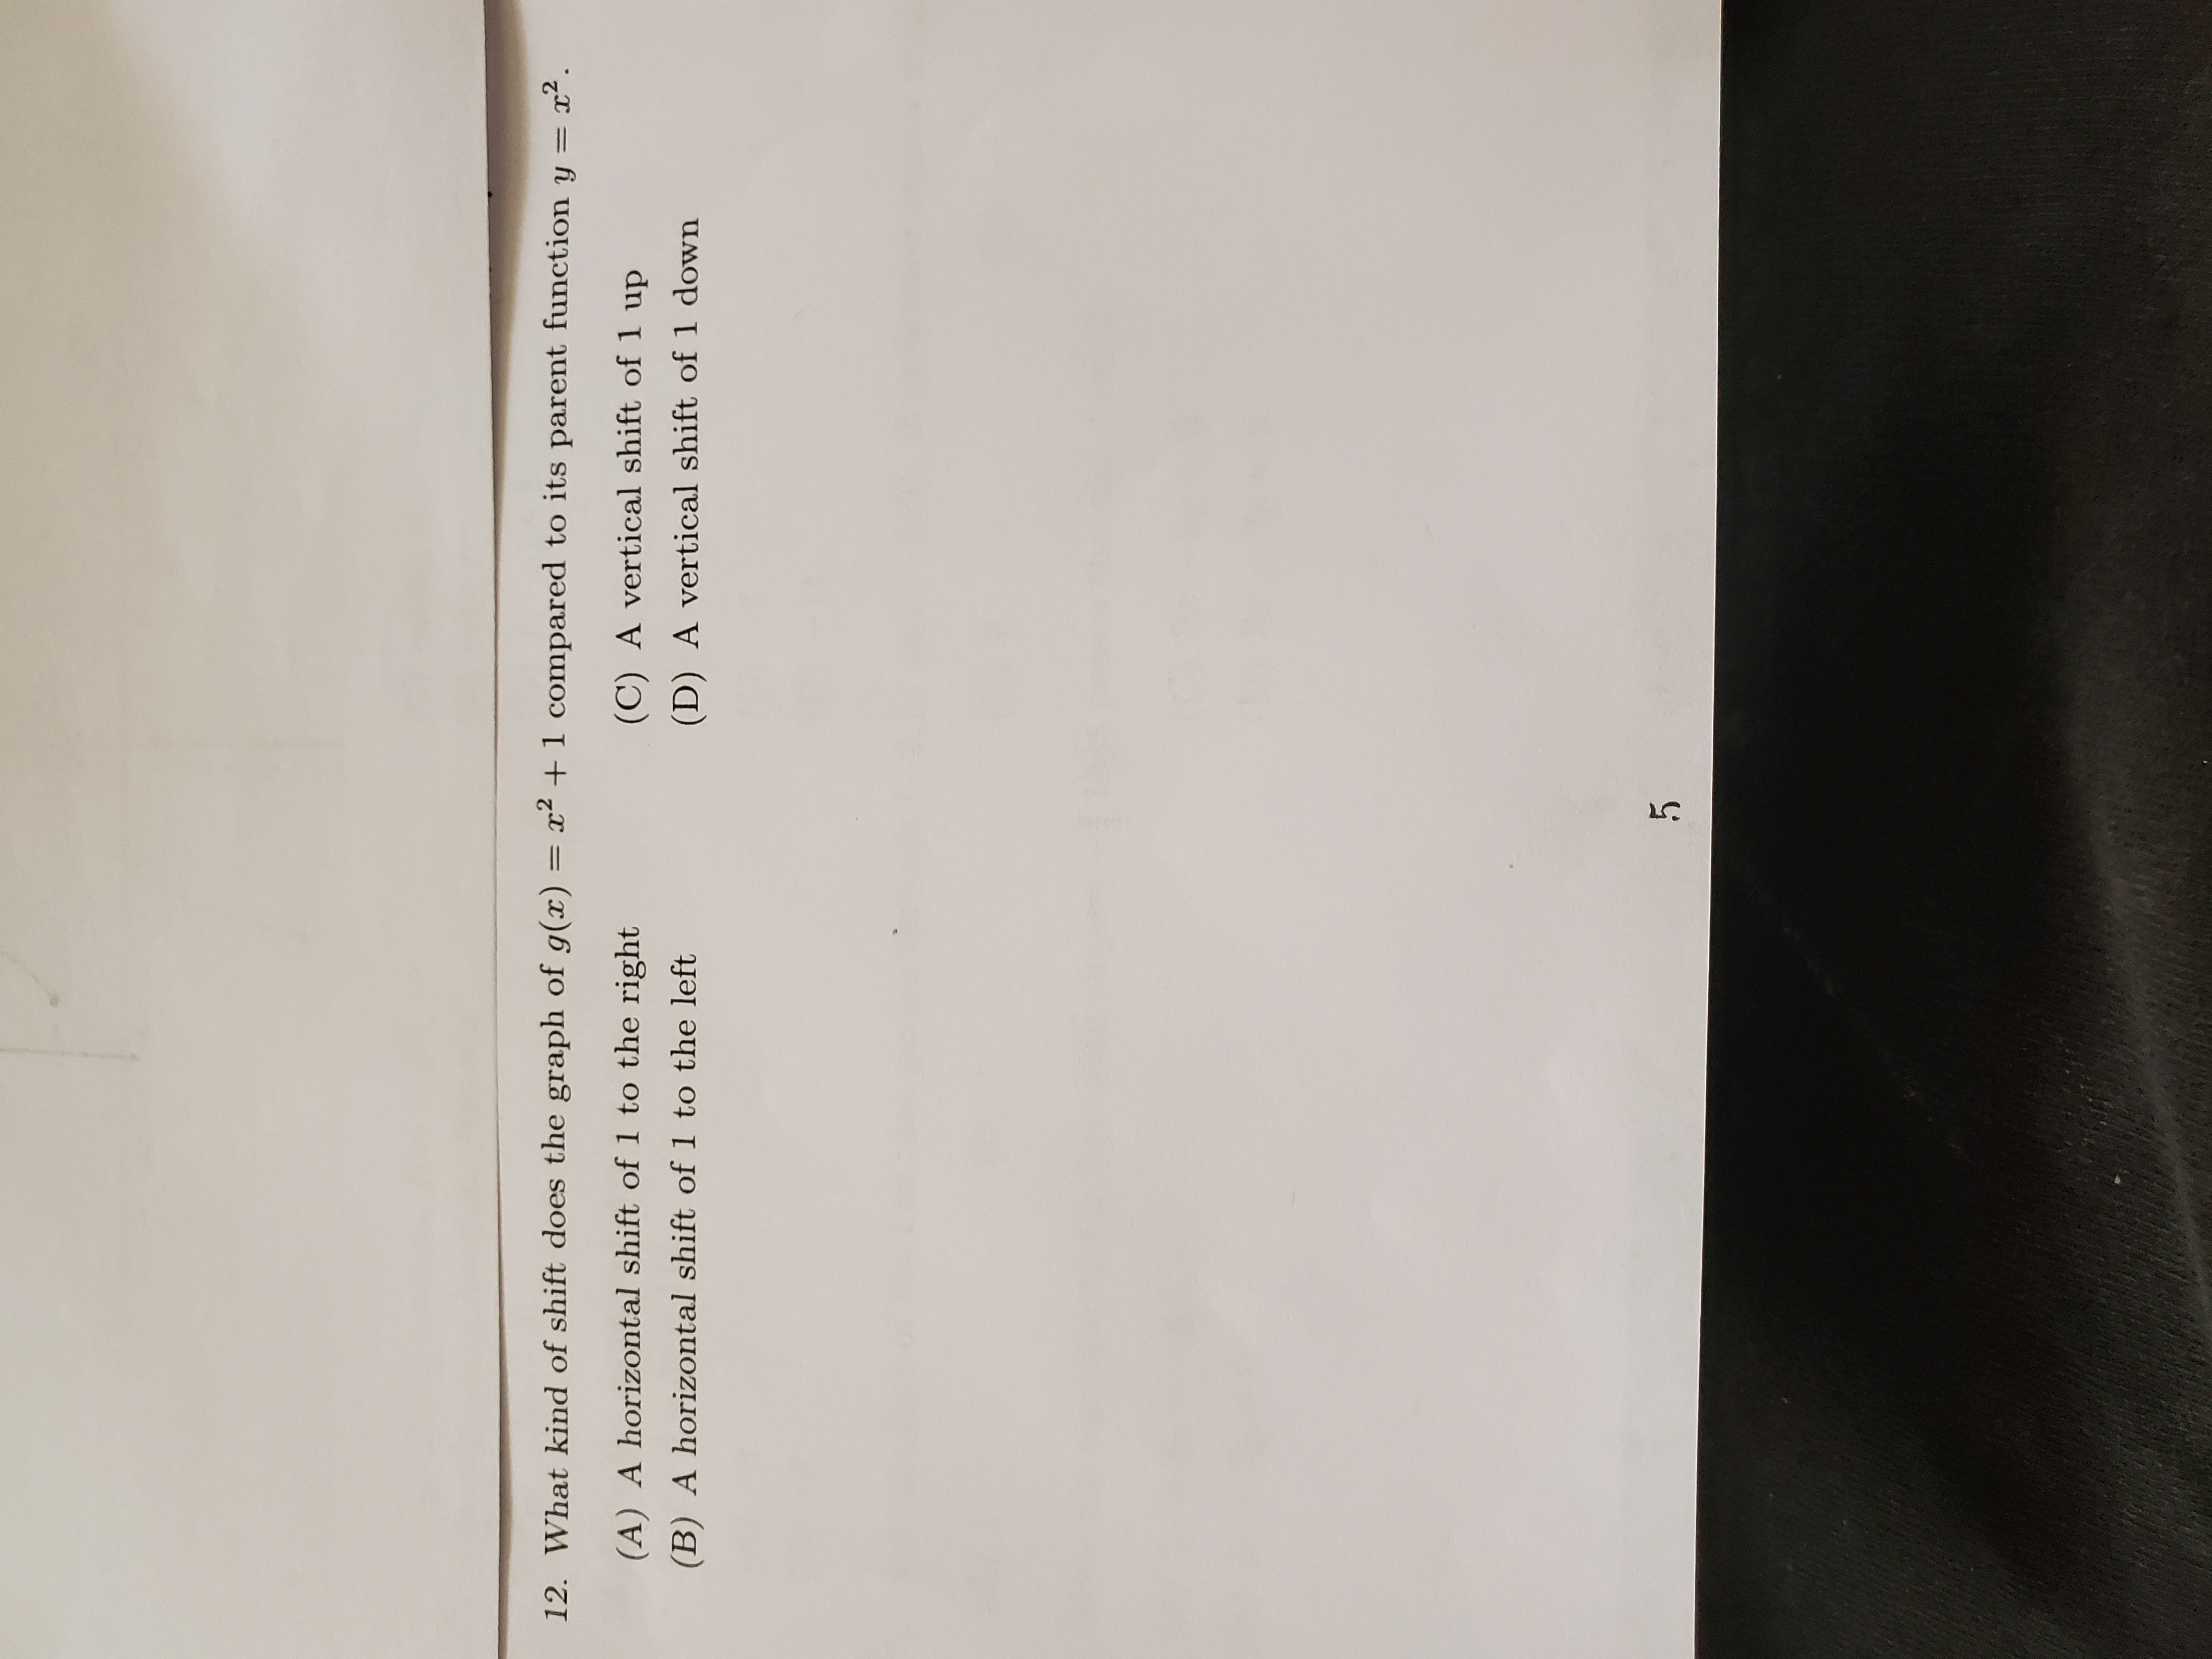 Answered 12 What Kind Of Shift Does The Graph